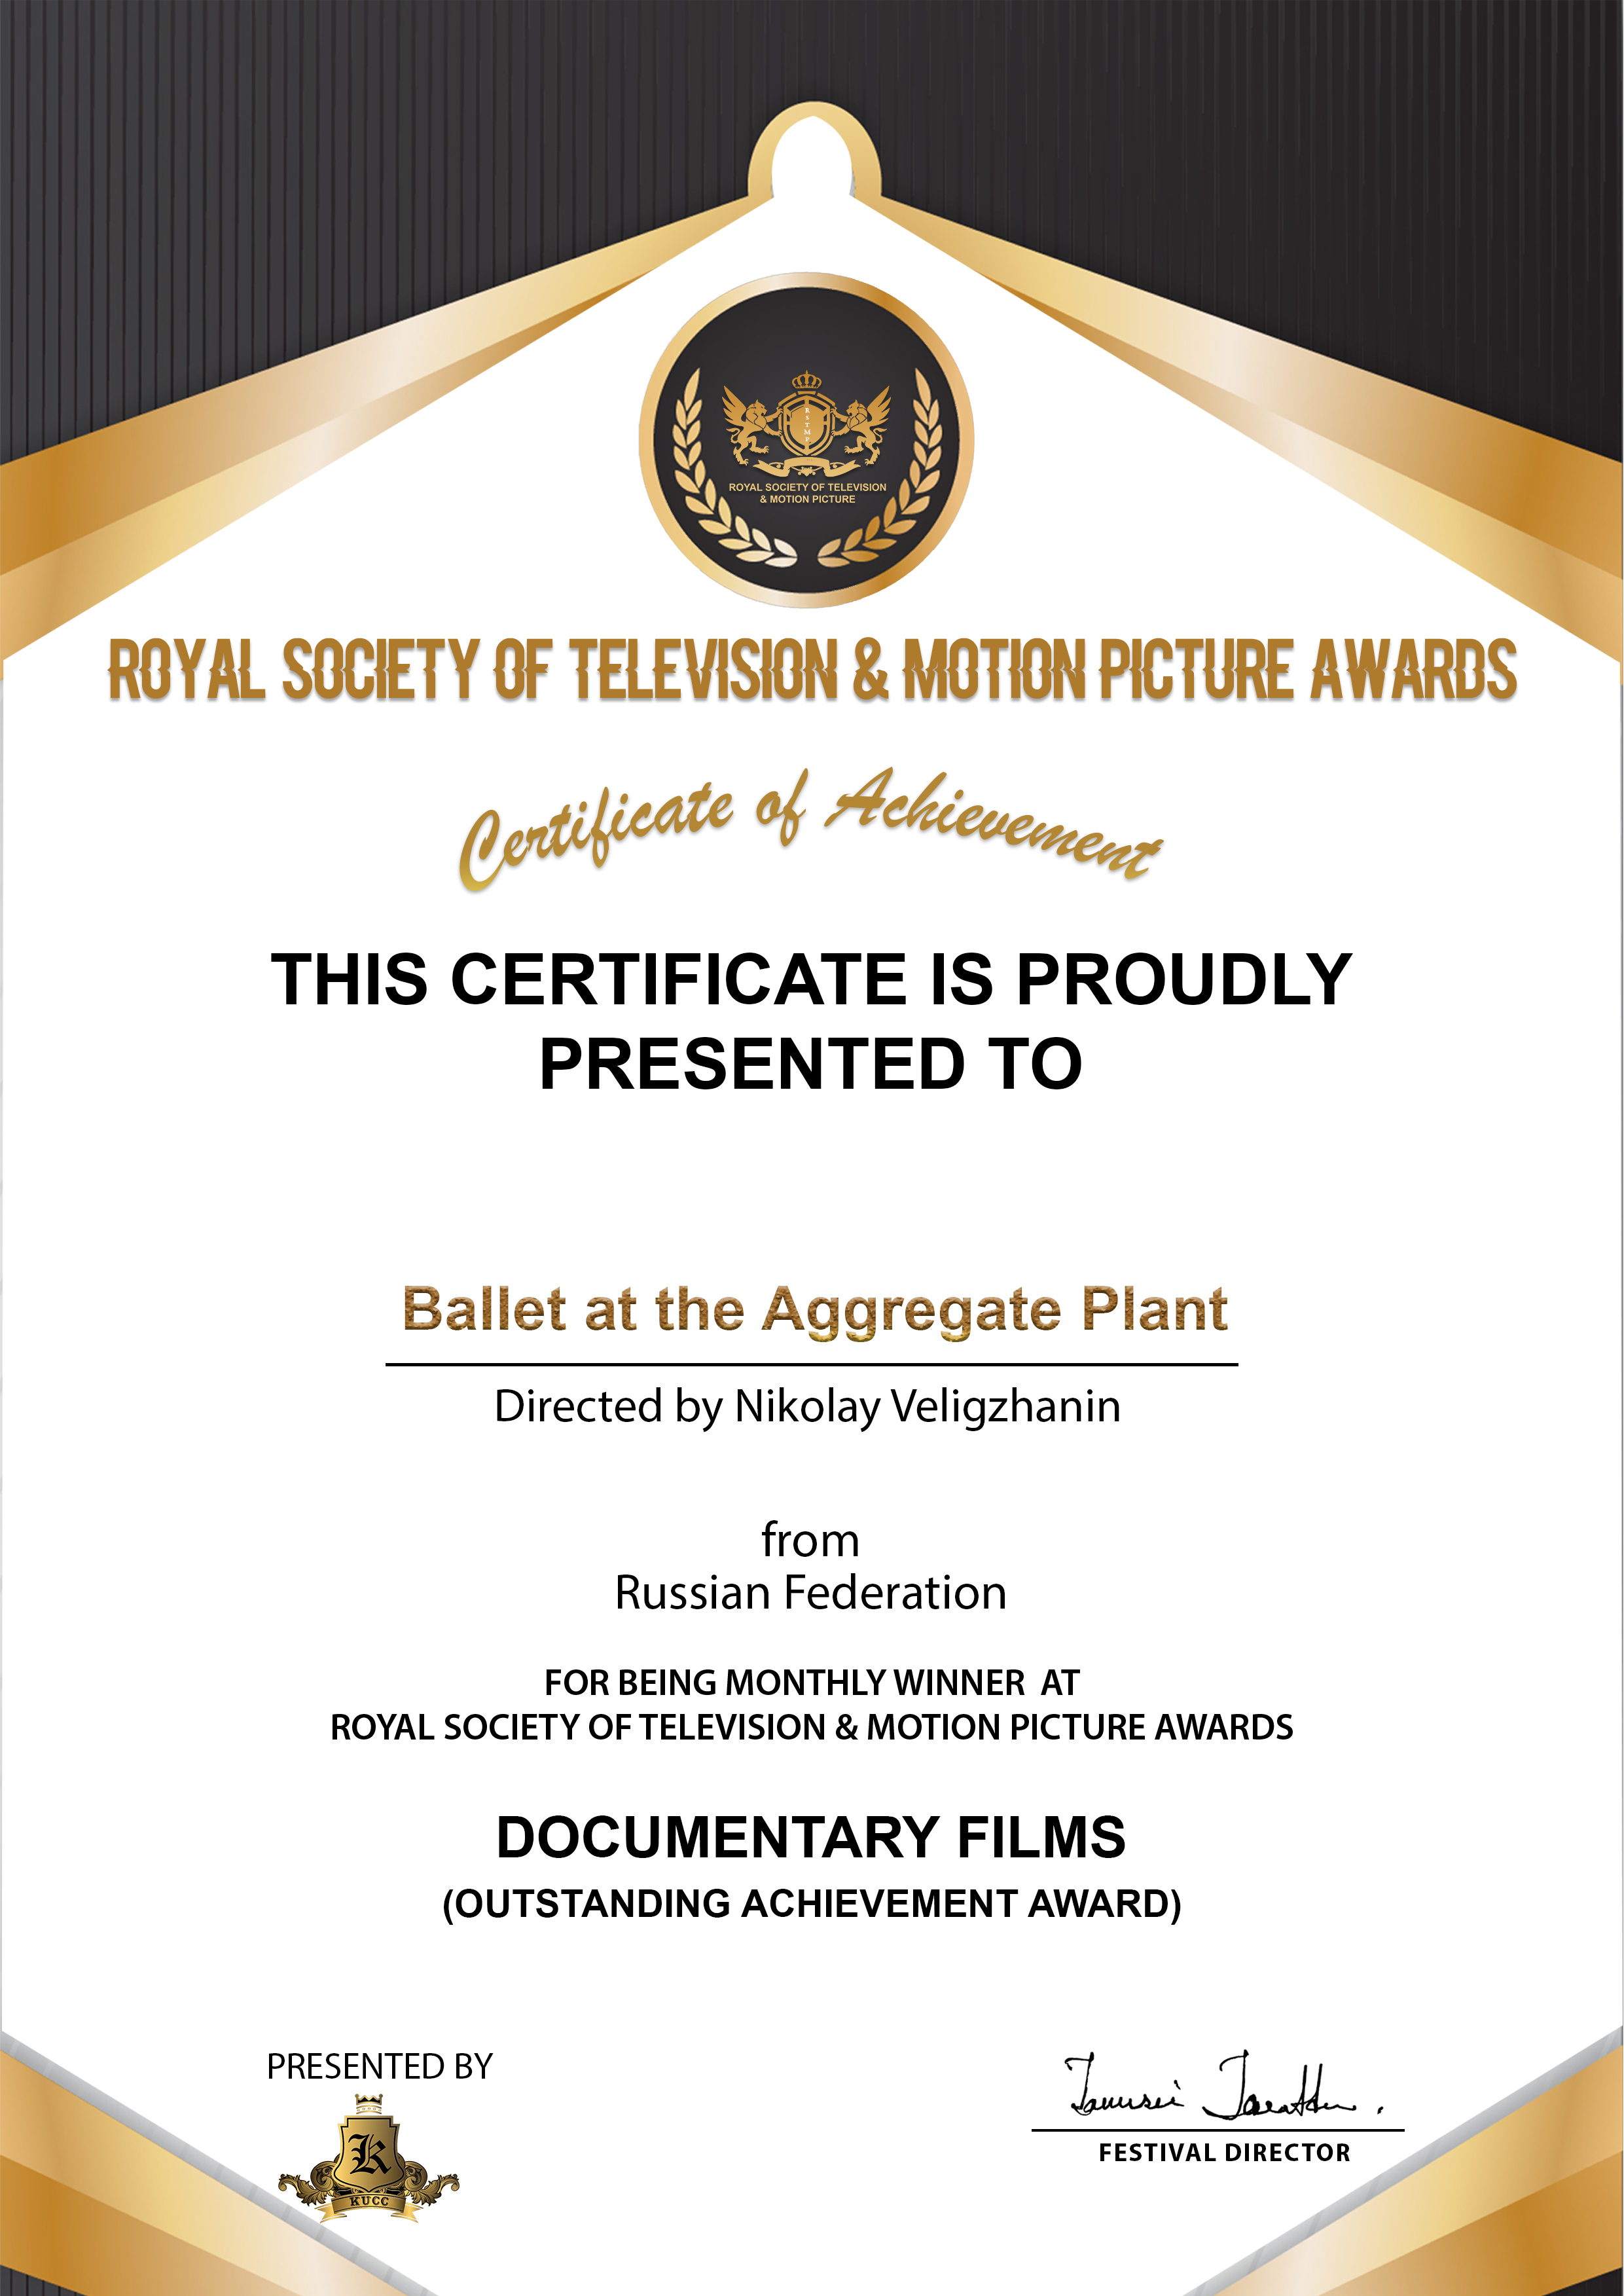 ROYAL SOCIETY OF TELEVISION & MOTION PICTURE AWARDS